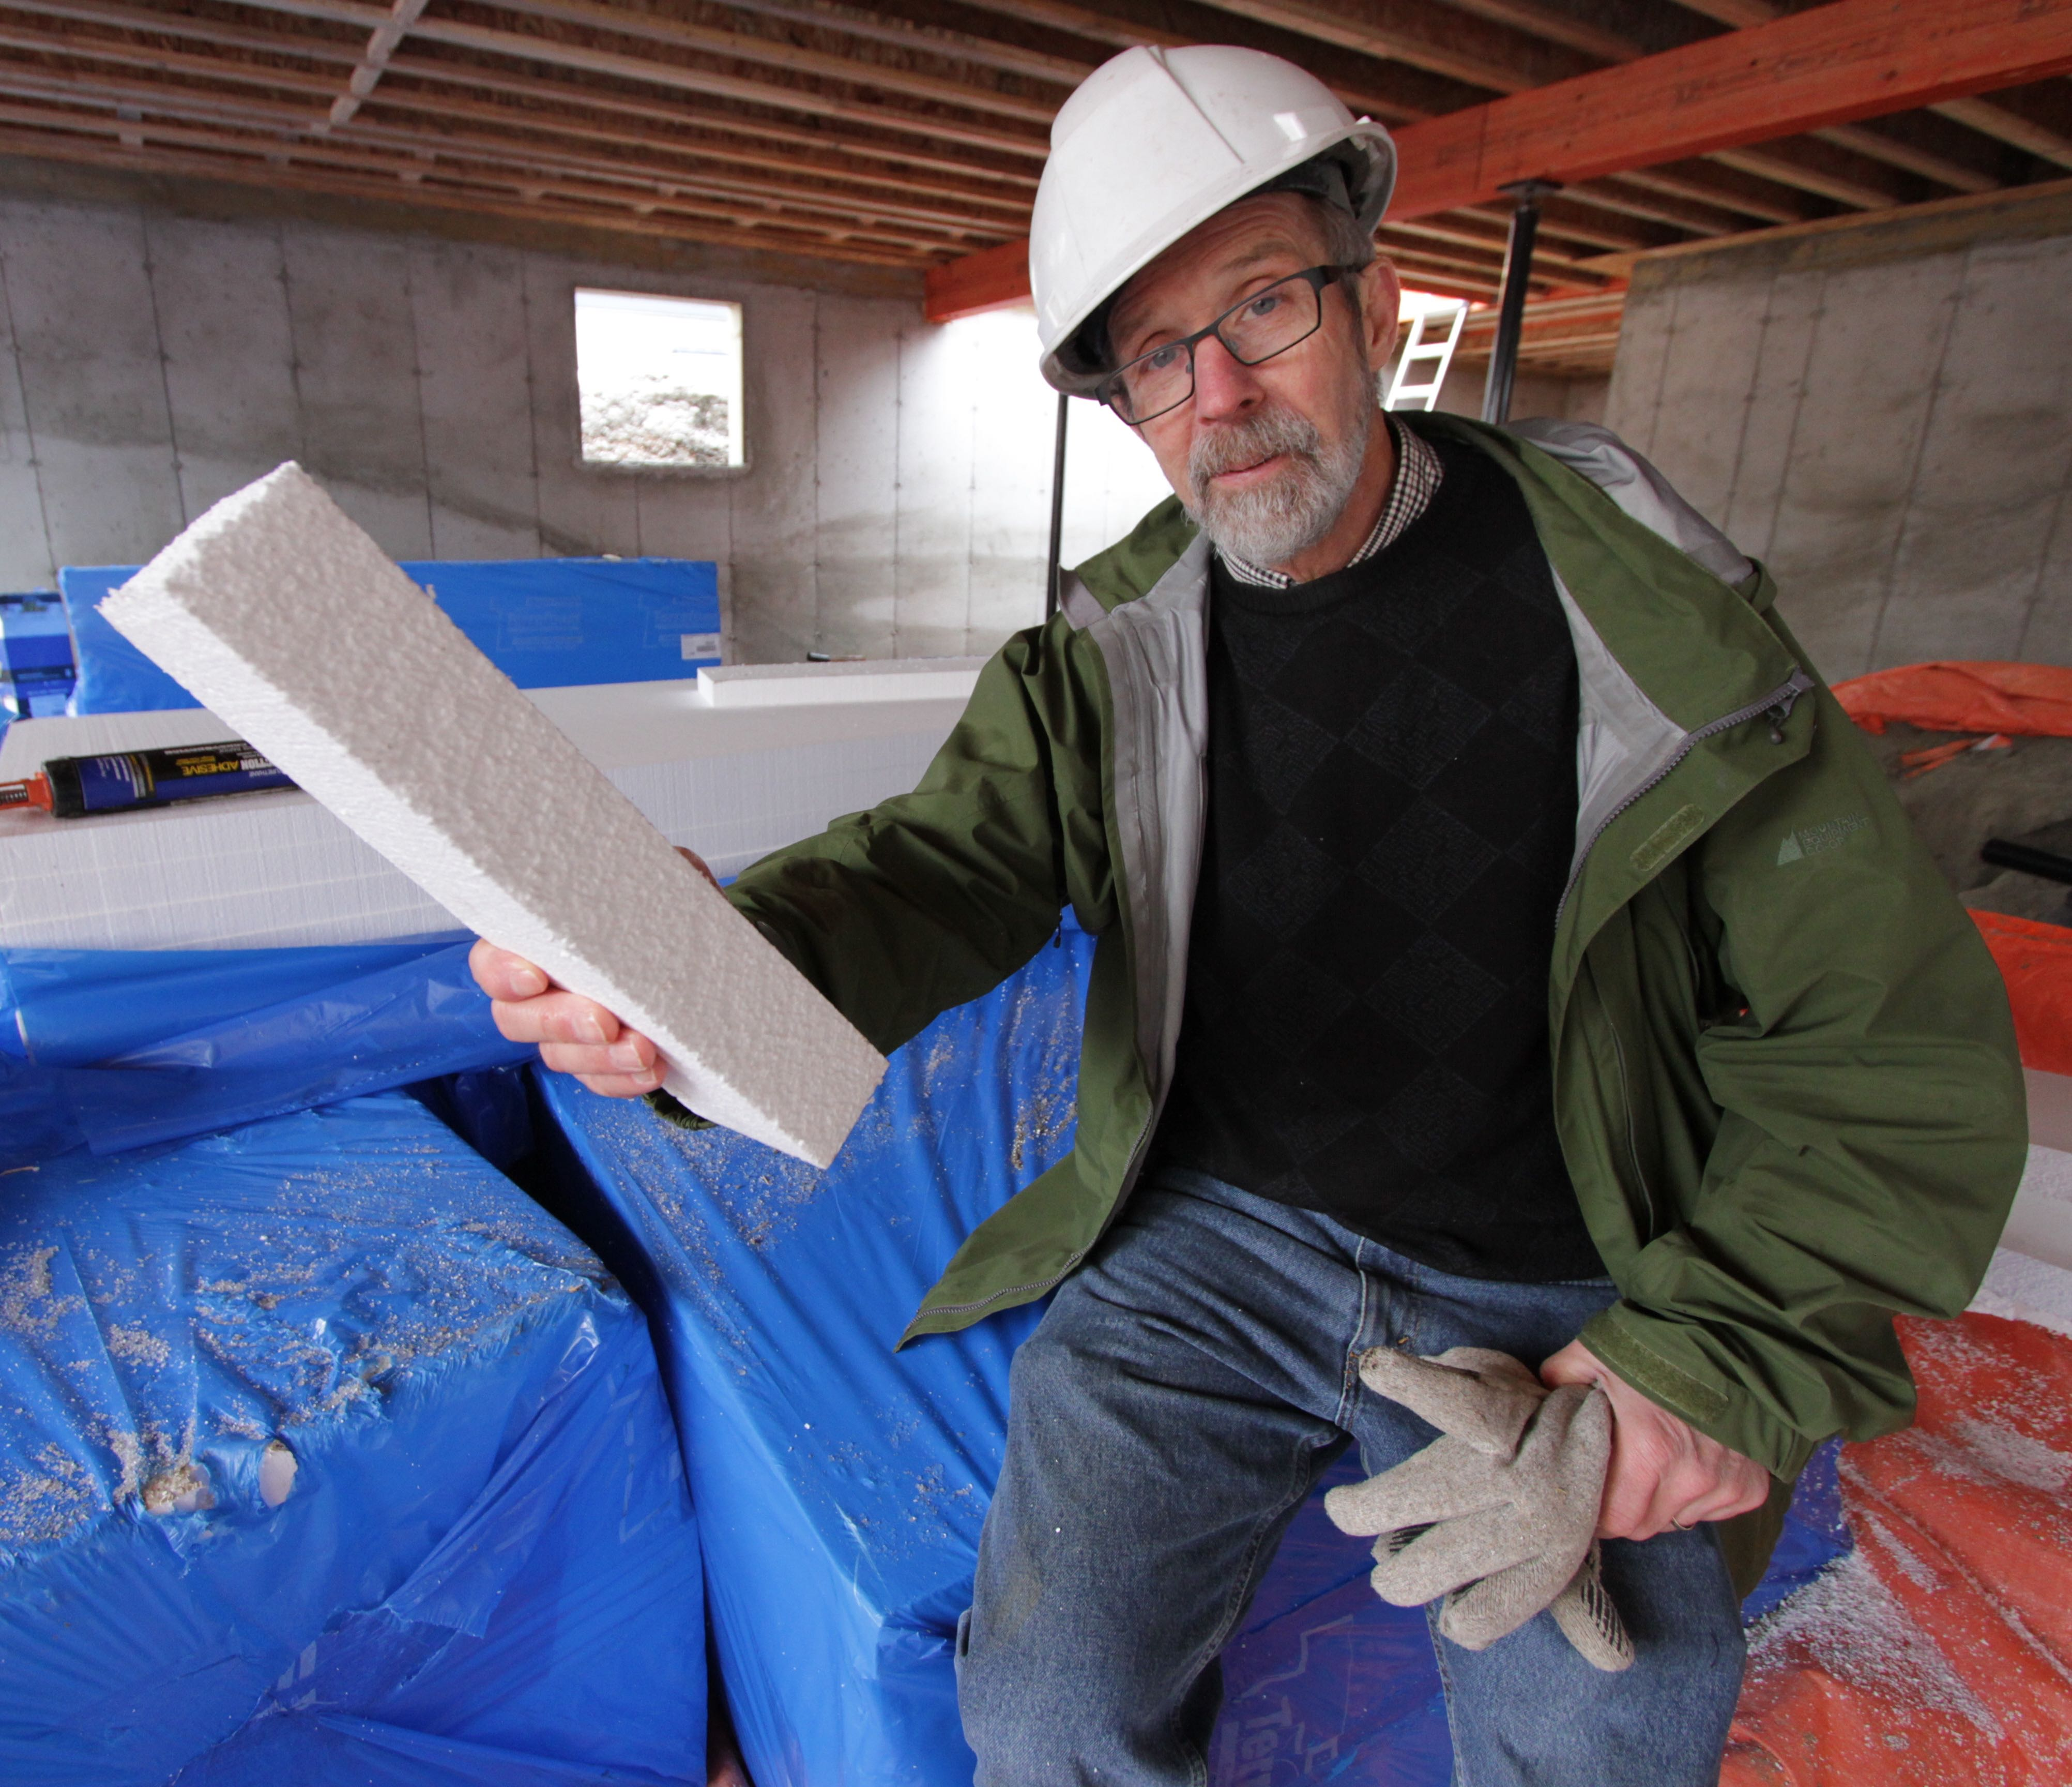 132 Insulation 101 One Builders Secret Blueprint For A Net Zero Composites Electrical Domestic Futures Just Home Green Energy